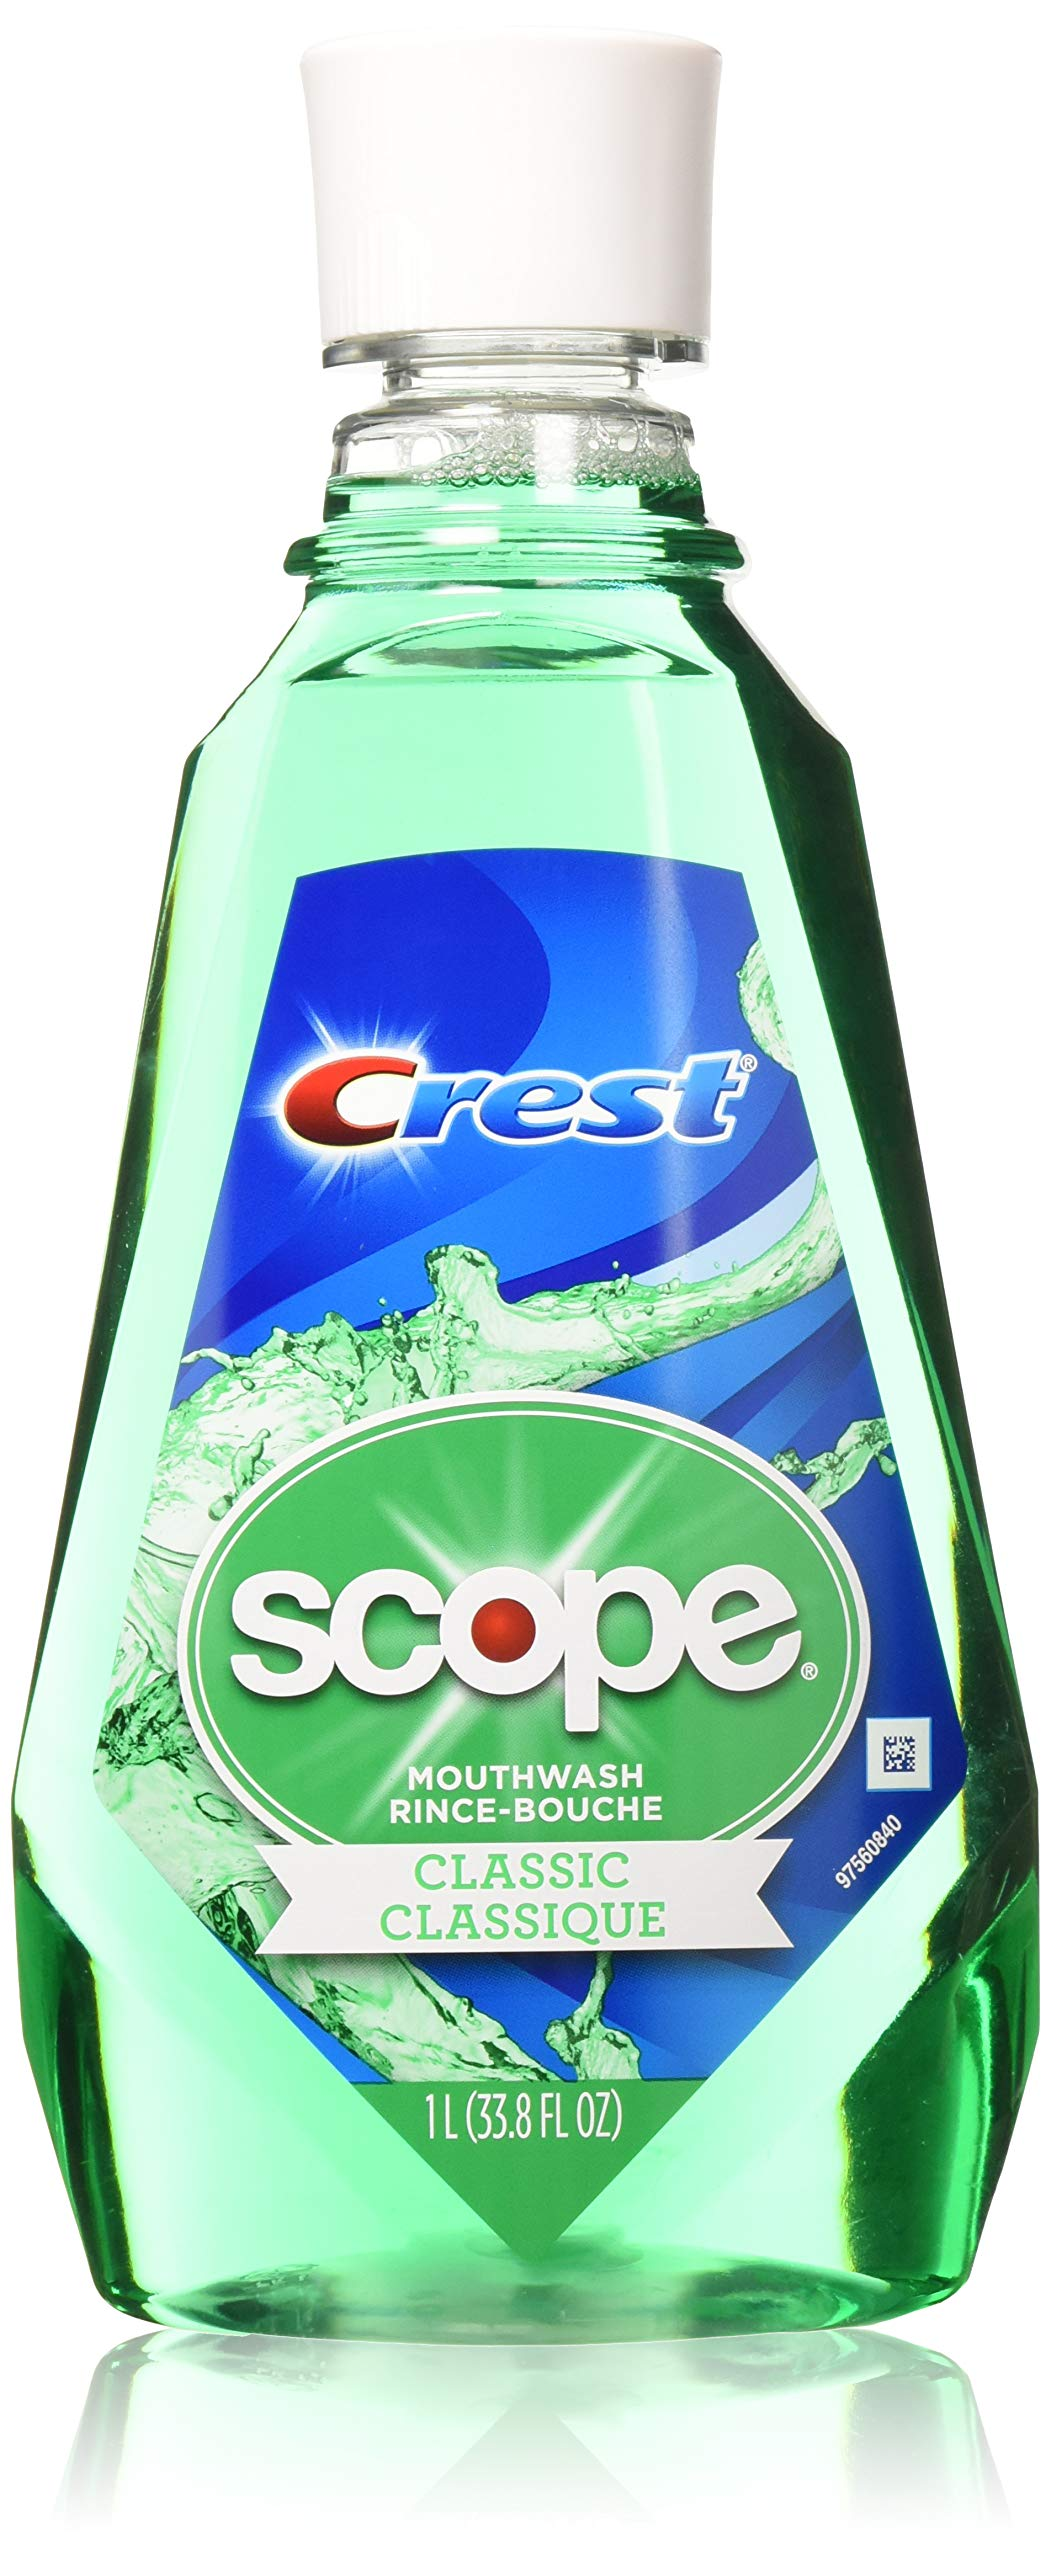 Crest Scope Classic Mouthwash Rince 1 Liter (33.8 oz) - Pack of 2